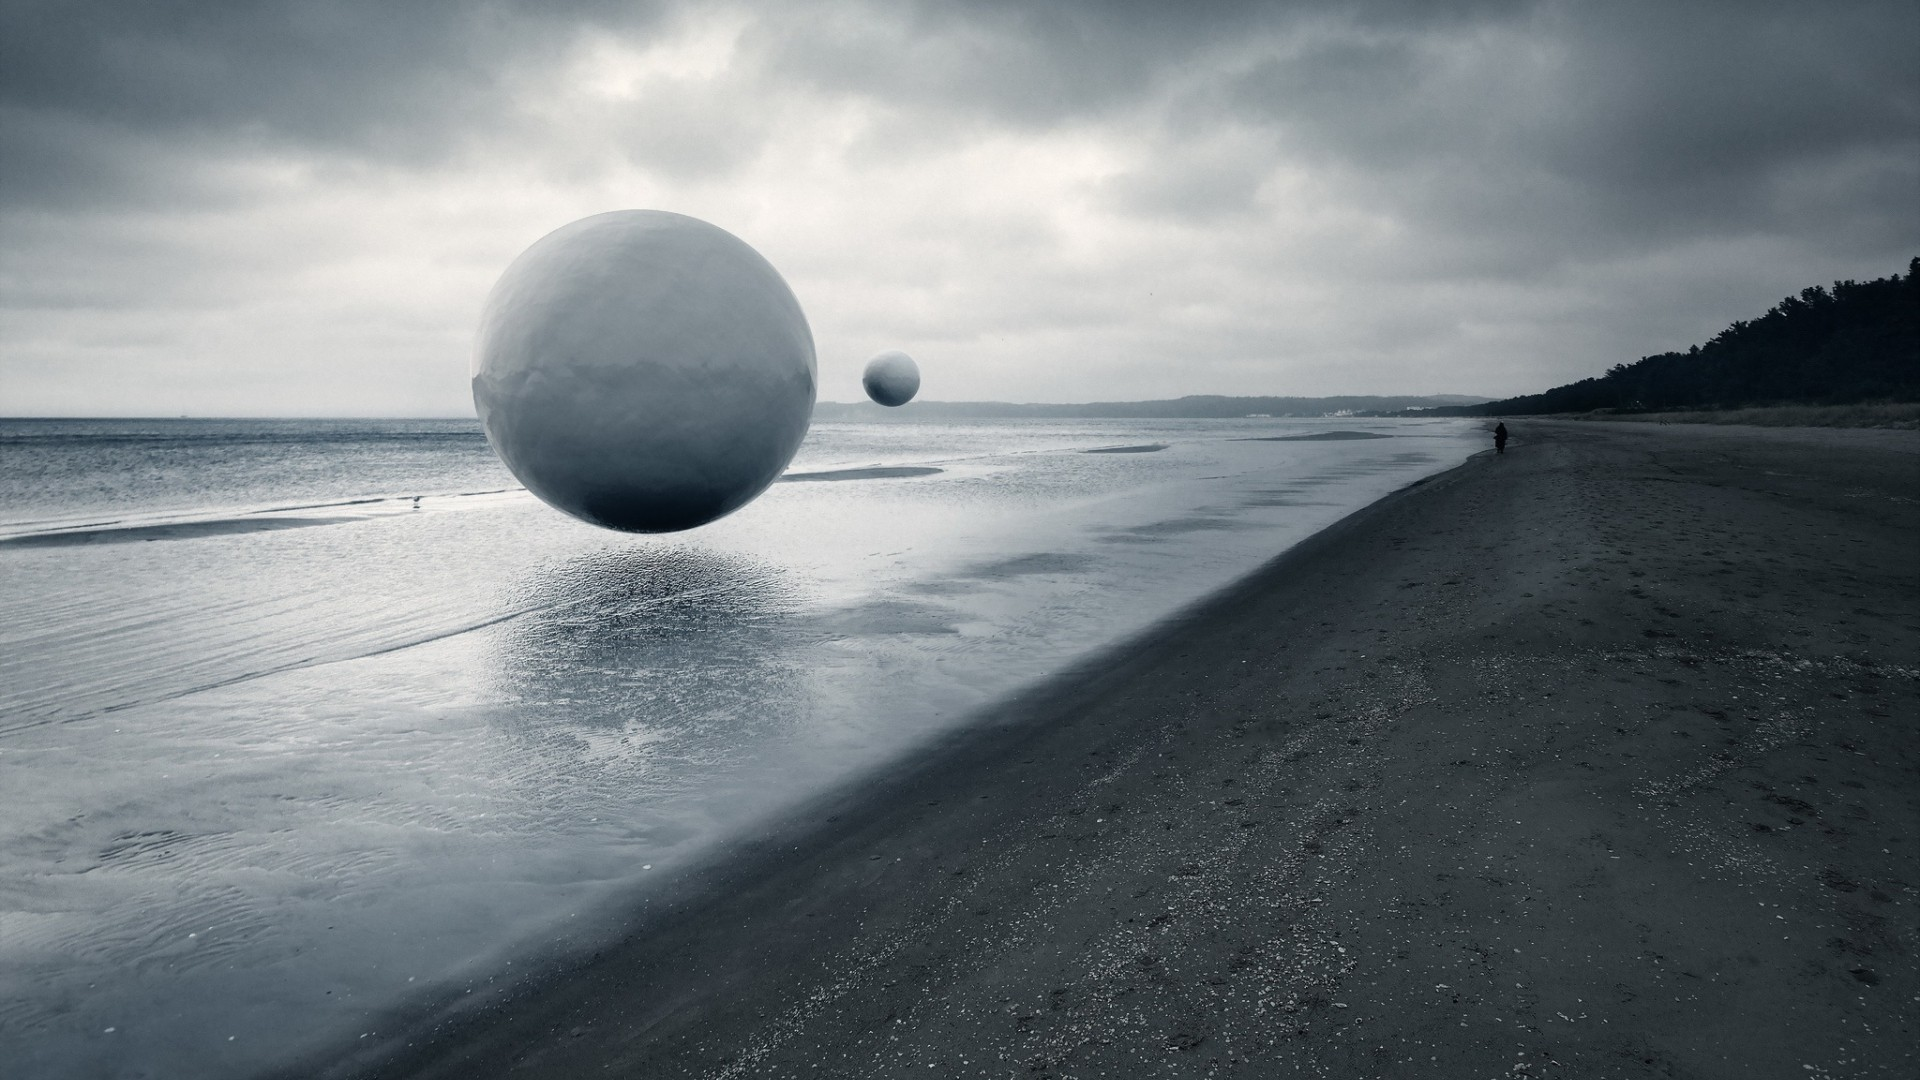 General 1920x1080 nature landscape water sea coast artwork ball sand beach people alone trees forest monochrome clouds photo manipulation sphere overcast UFOs